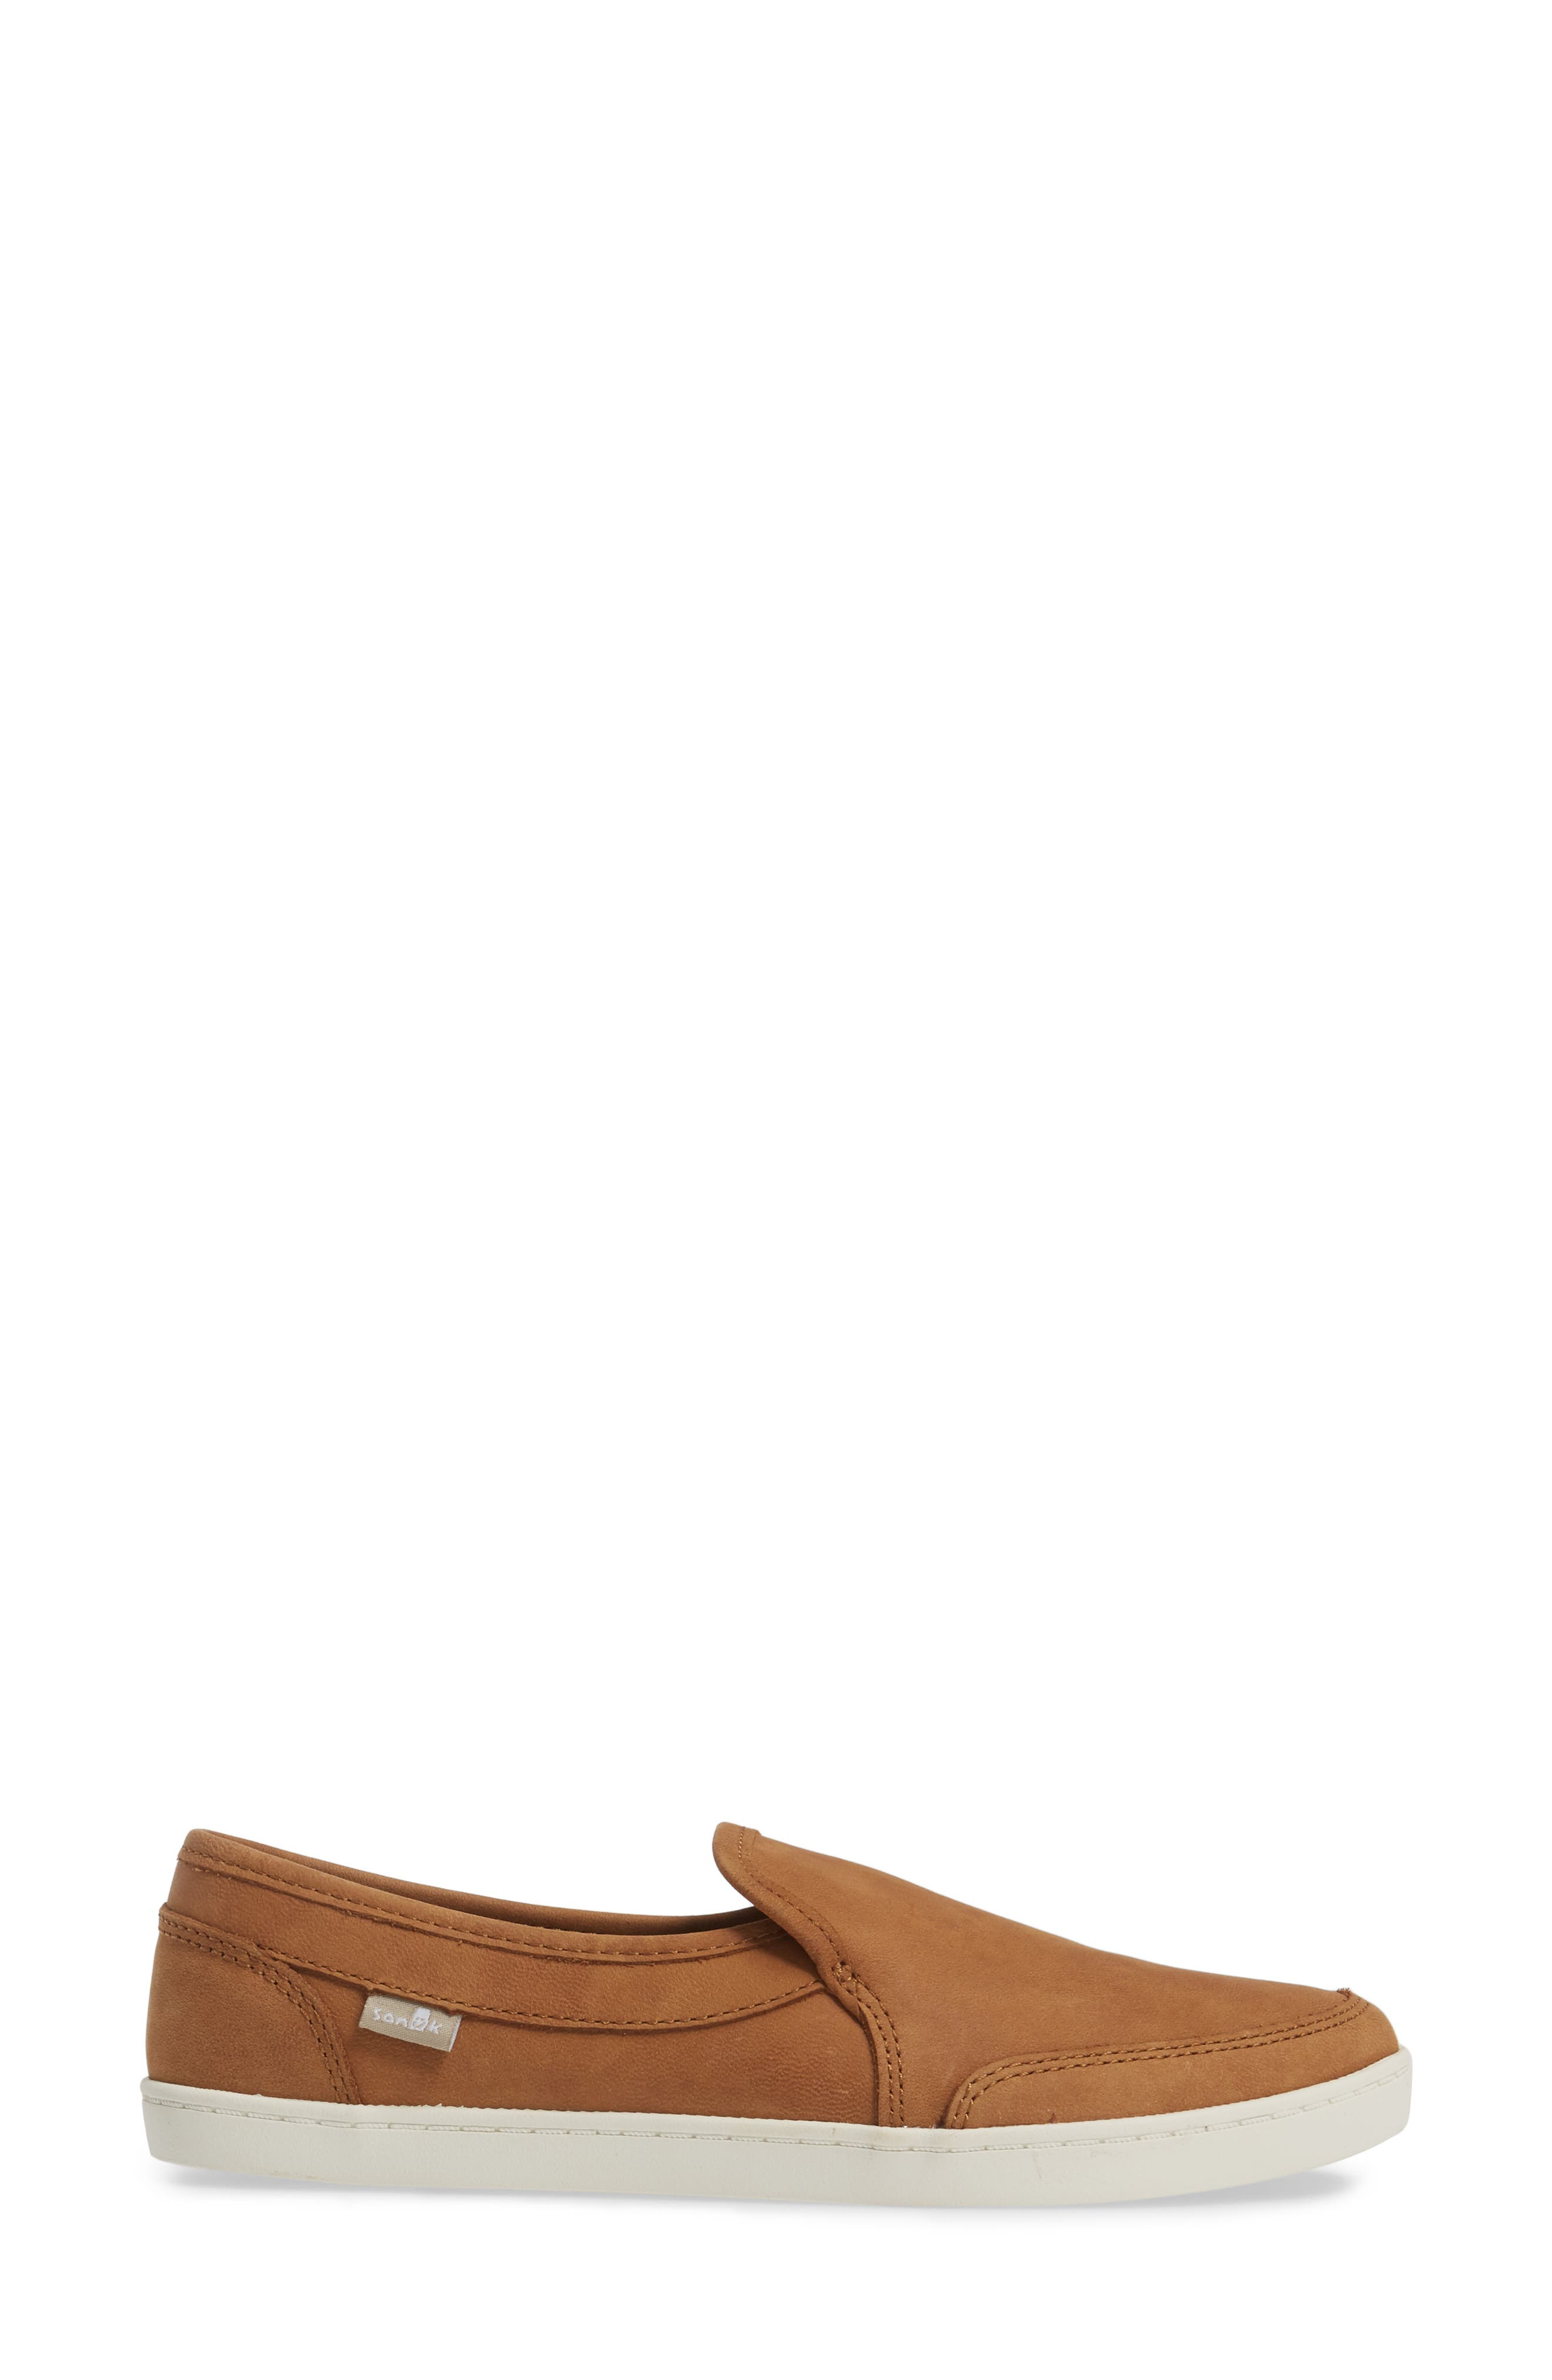 'Pair O Dice' Slip On,                             Alternate thumbnail 3, color,                             Tobacco Brown